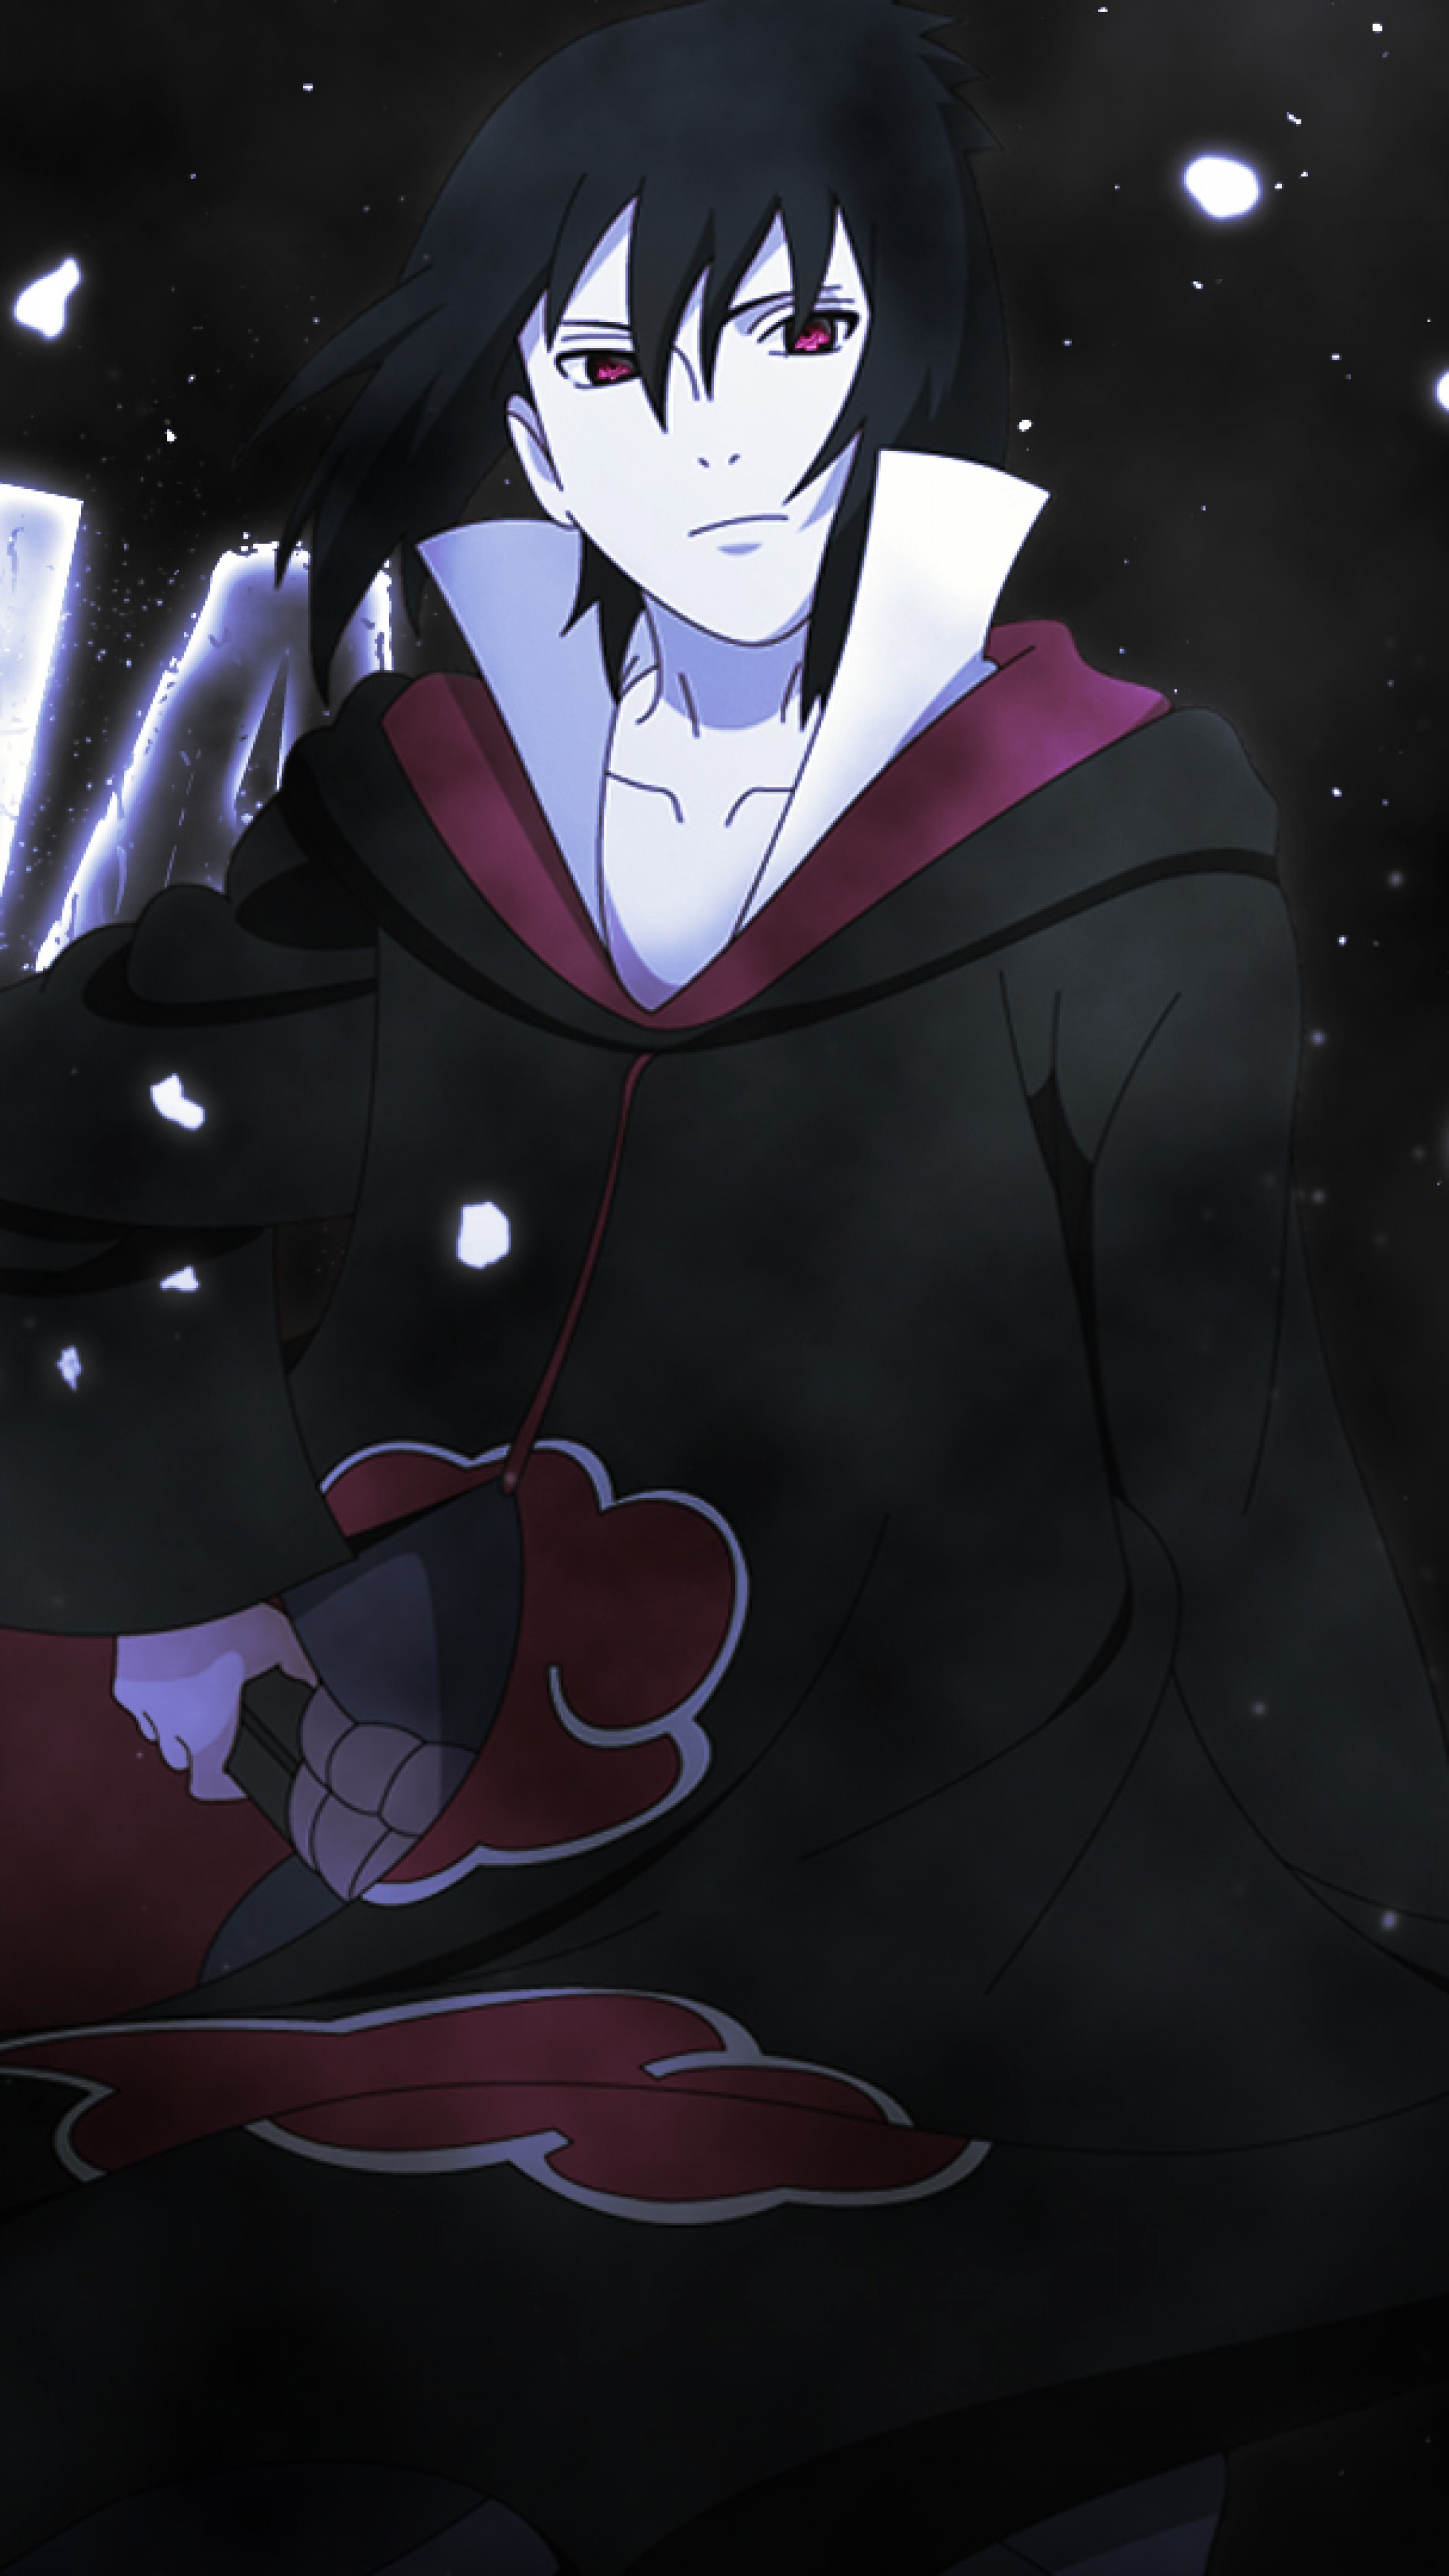 Sasuke Mangekyou Sharingan Wallpaper (63+ images)